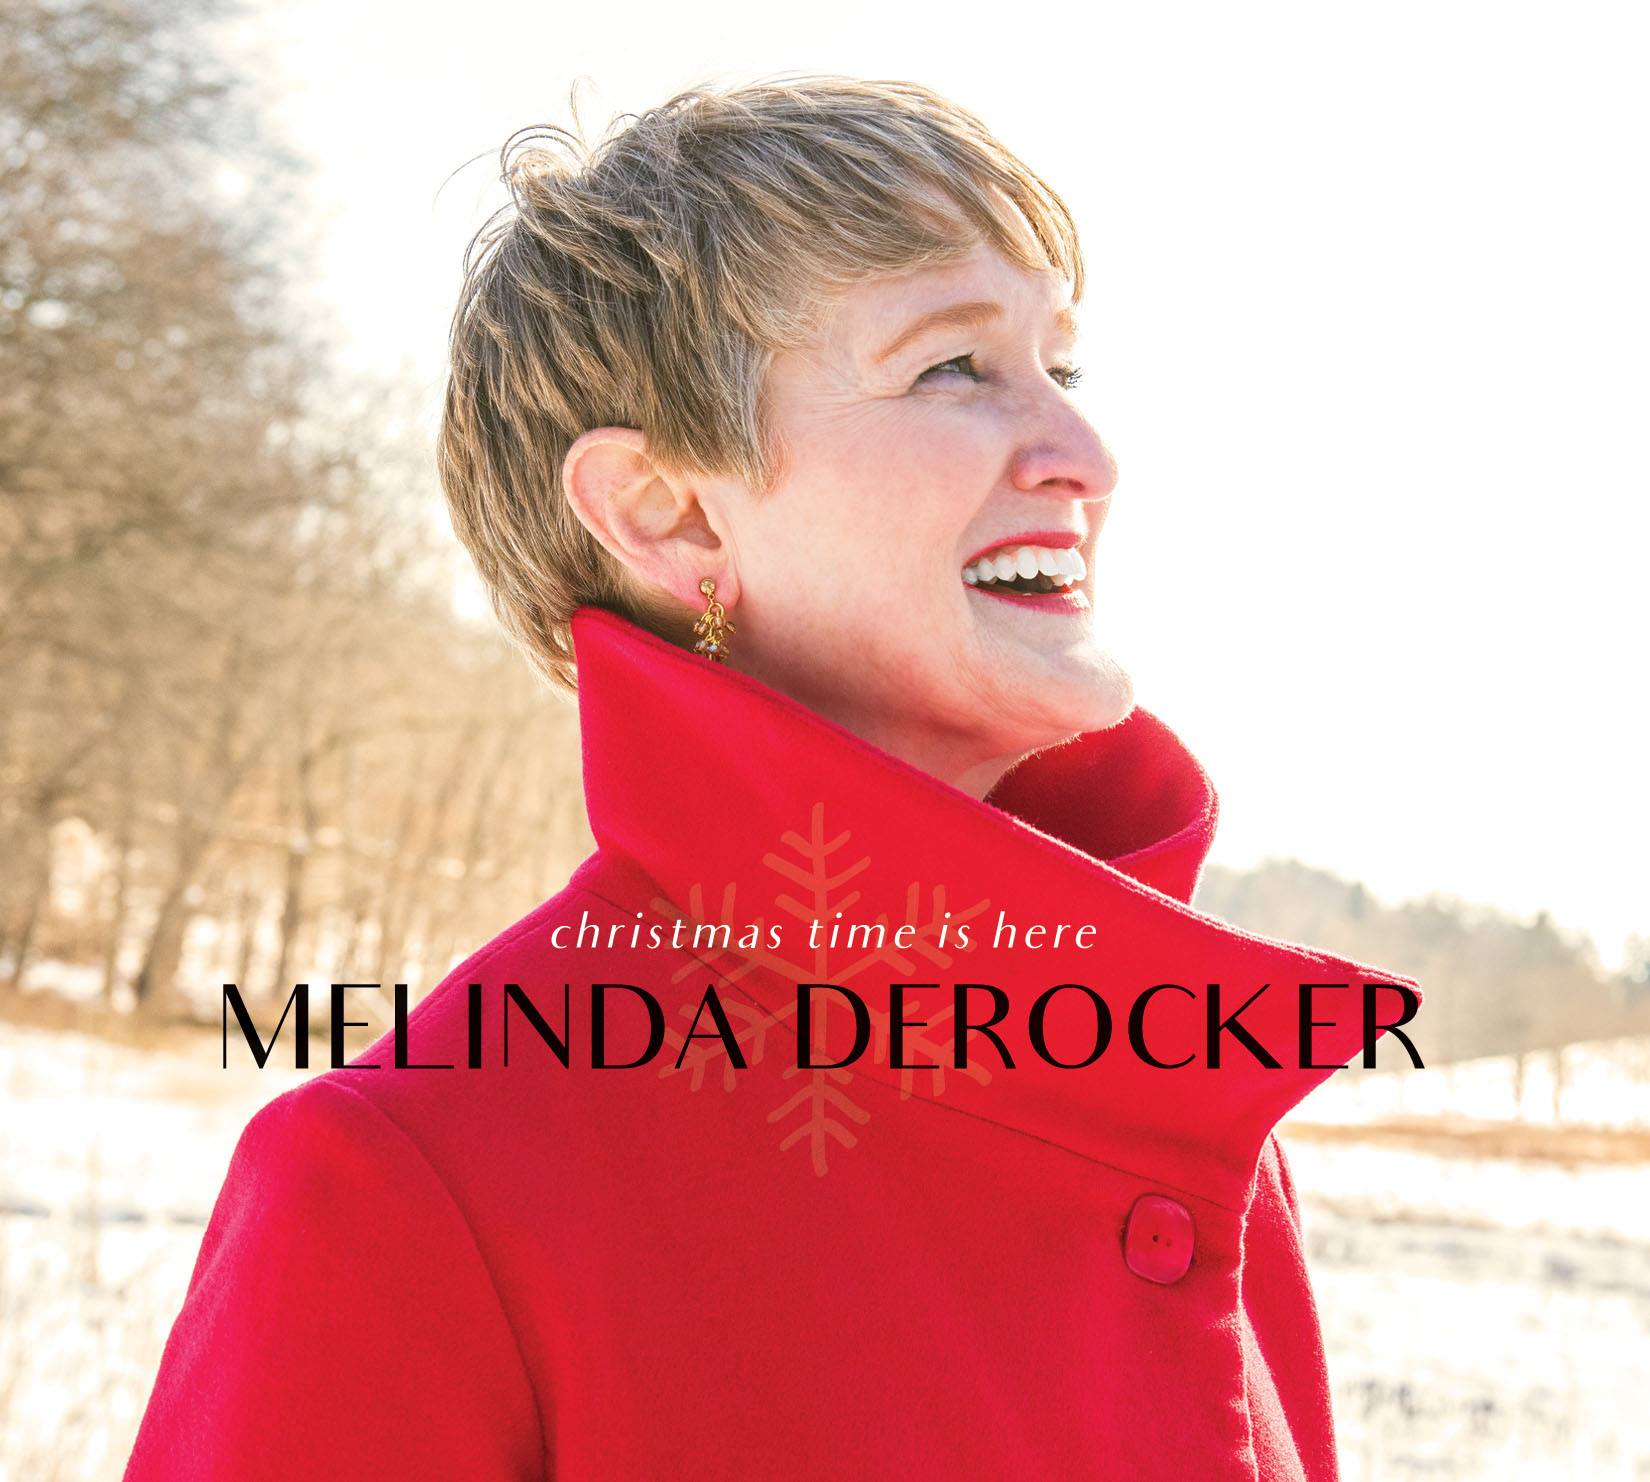 Melinda_DeRocker_CD_Cover_2018_a